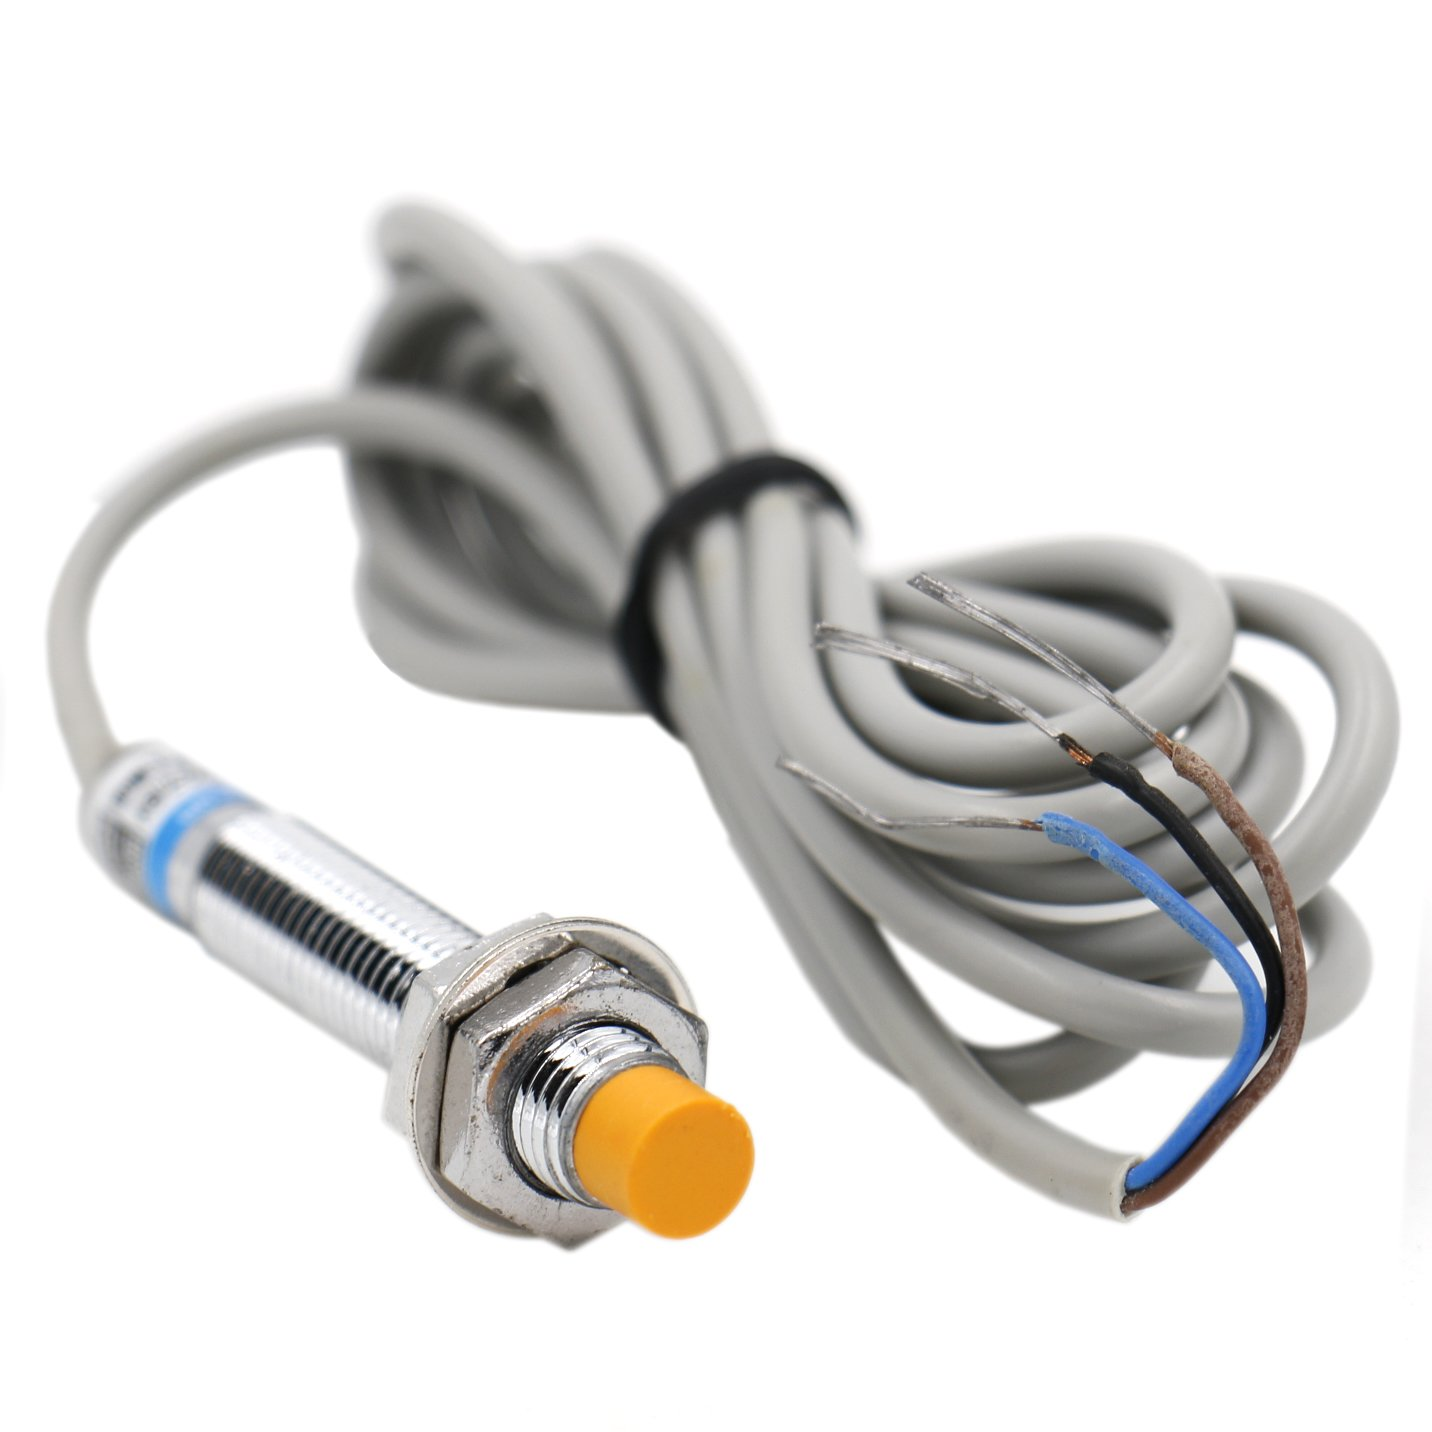 Heschen inductive proximity sensor switch LJ8A3-2-Z/BY detector 2 mm 6-36 VDC 200mA PNP normally open(NO) 3 wire Heschen Electric Co.Ltd HS-LJ8A3-2-Z/BY